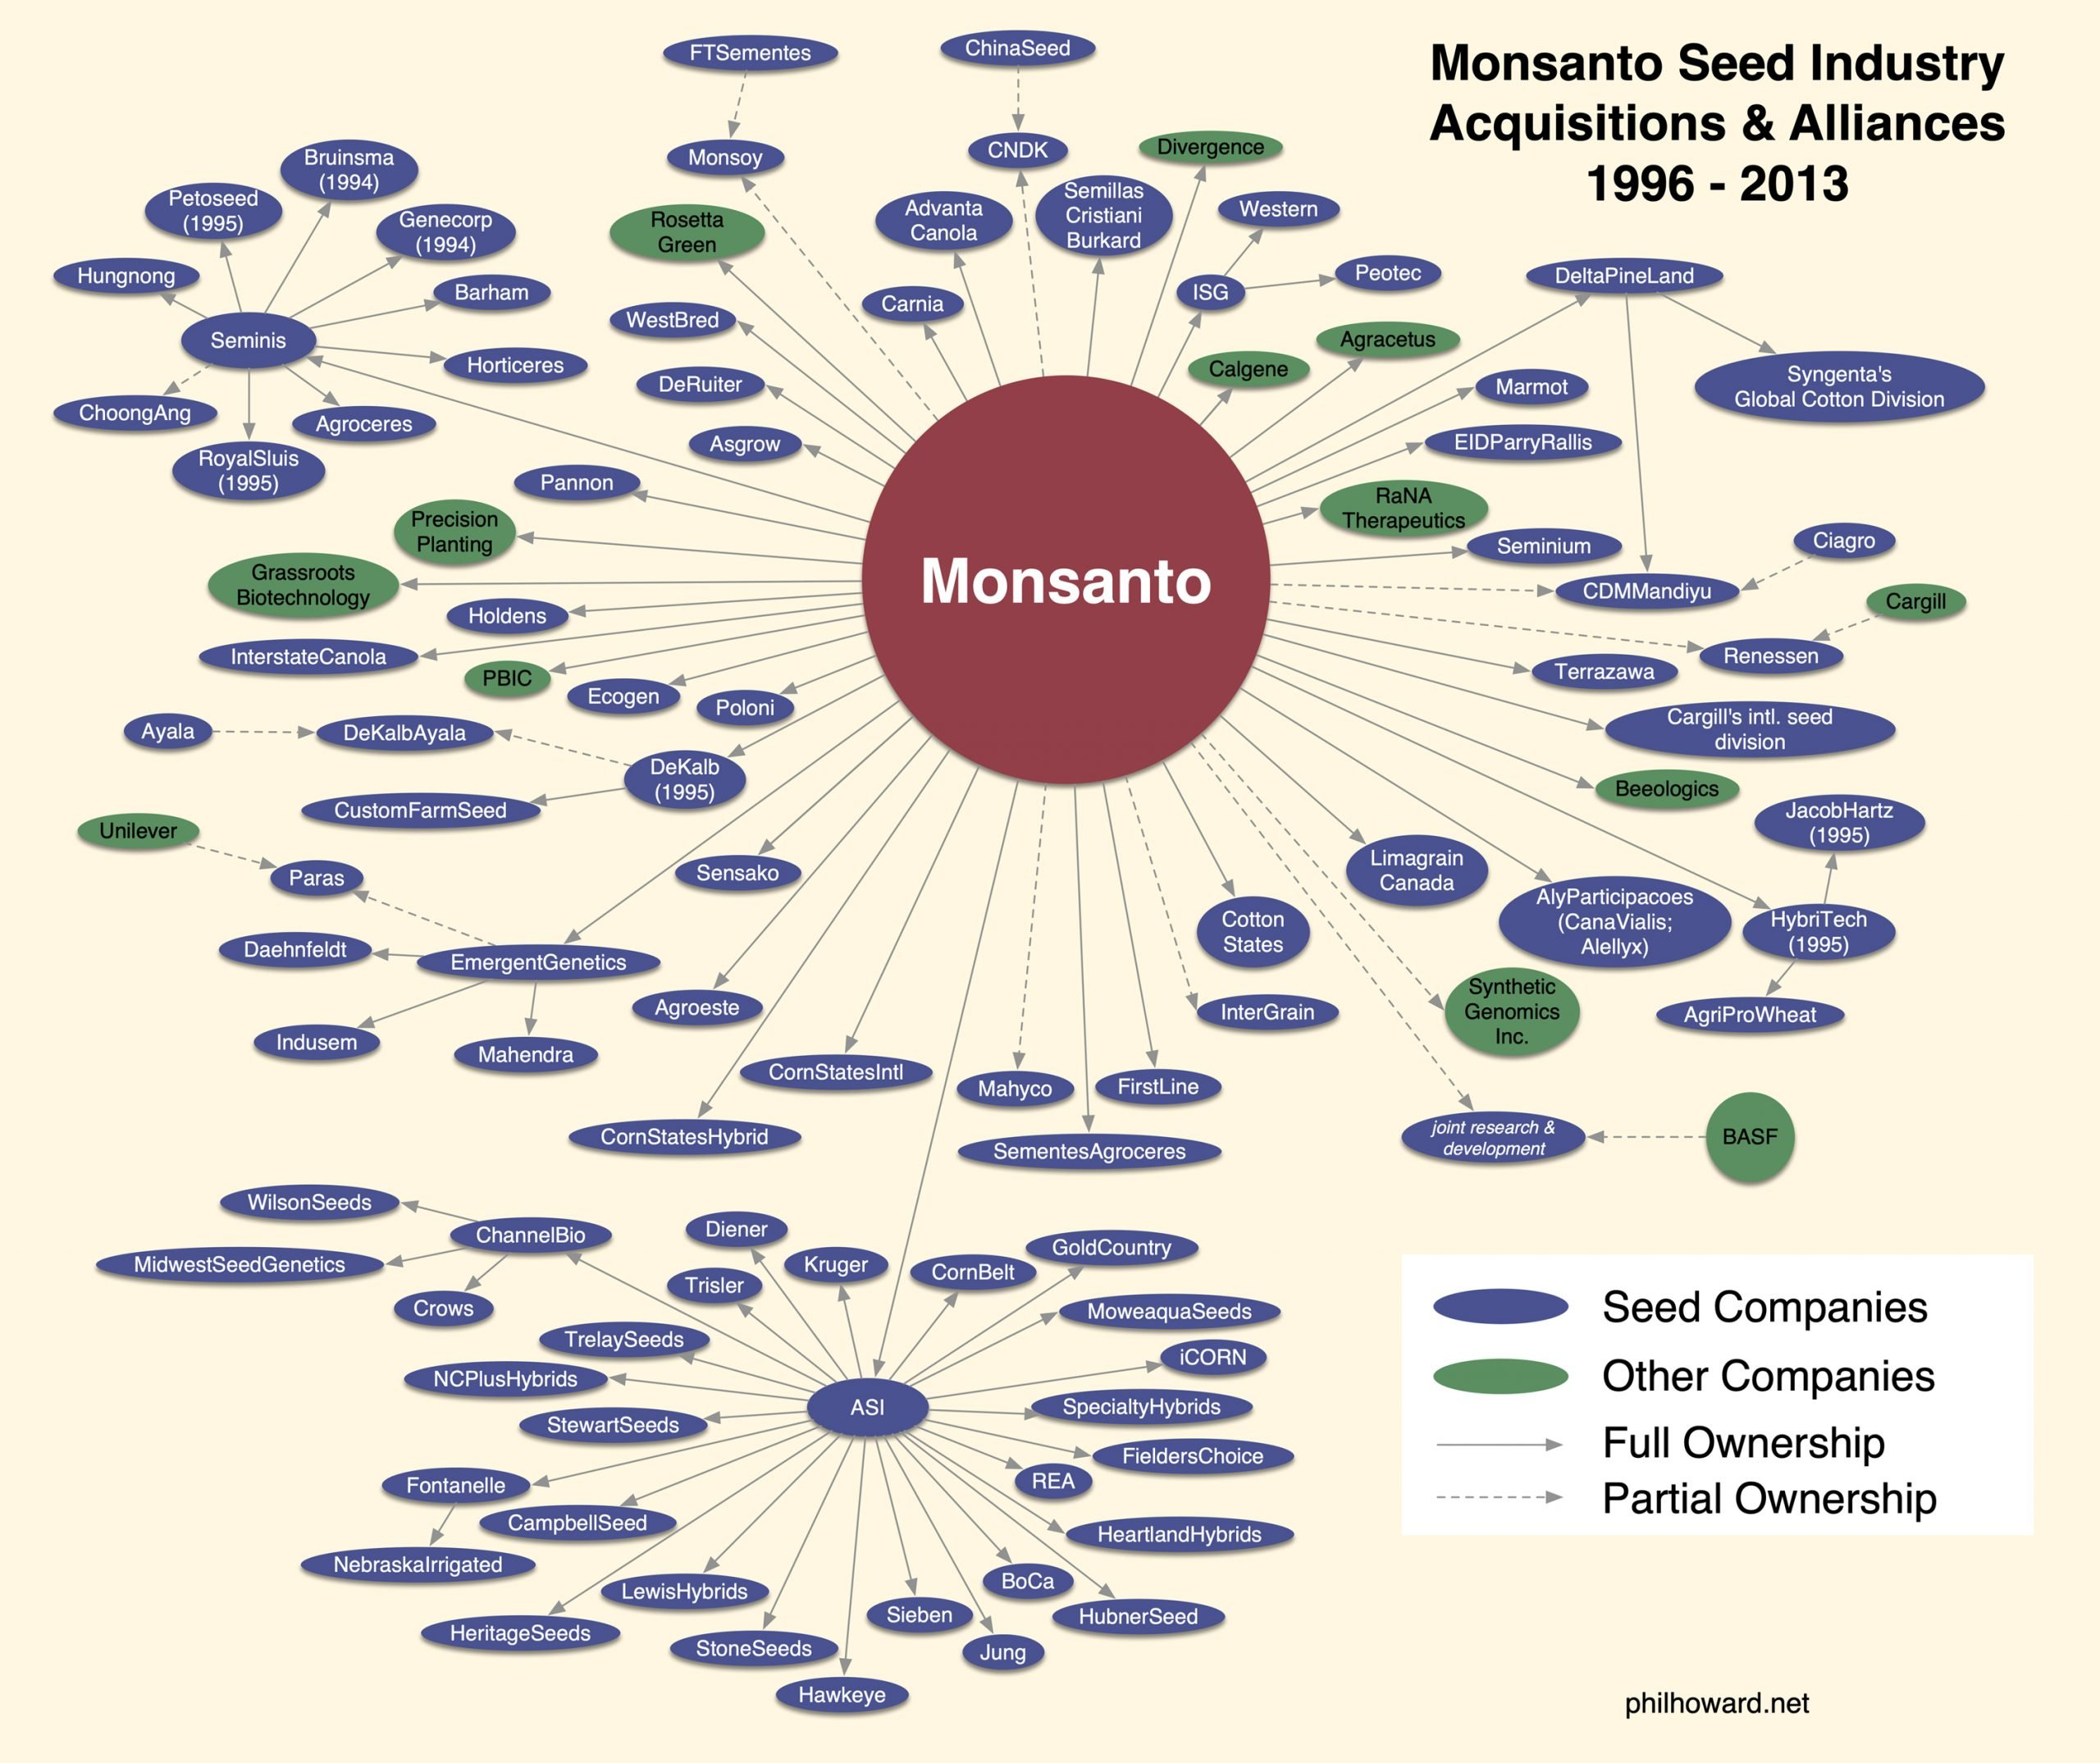 Between 1996 and 2013 Monsanto acquired more than 70 seed companies, before the firm was itself acquired by competing seed/chemical firm Bayer in 2018. (Image credit: Philip Howard)